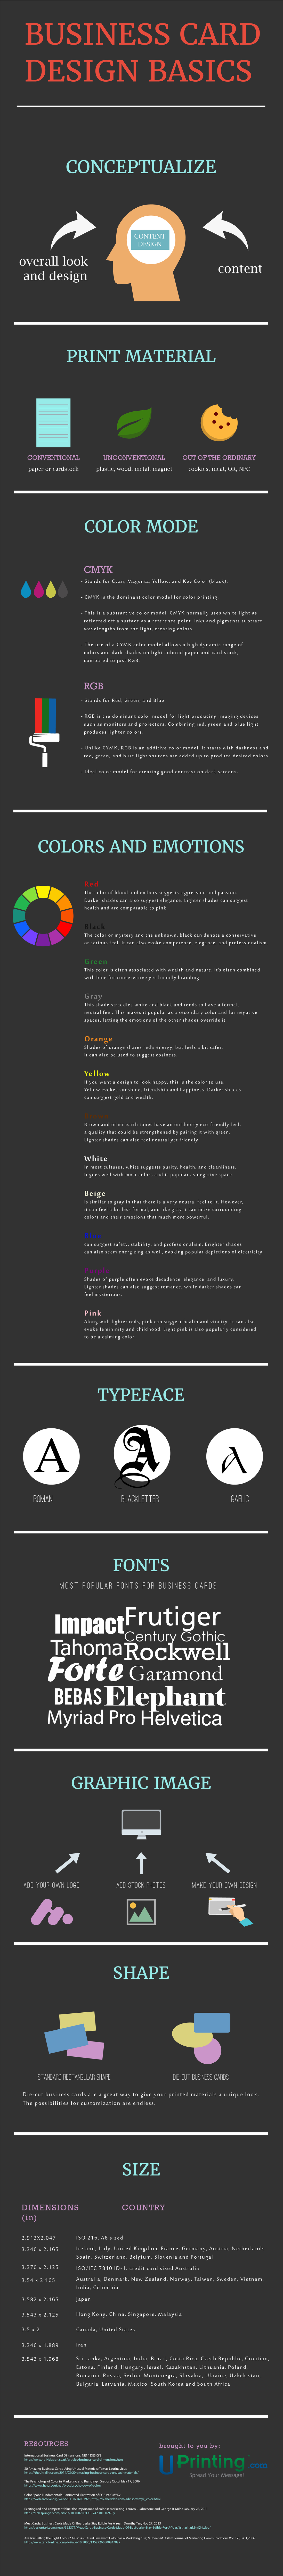 Business Card Design Basics Infographic